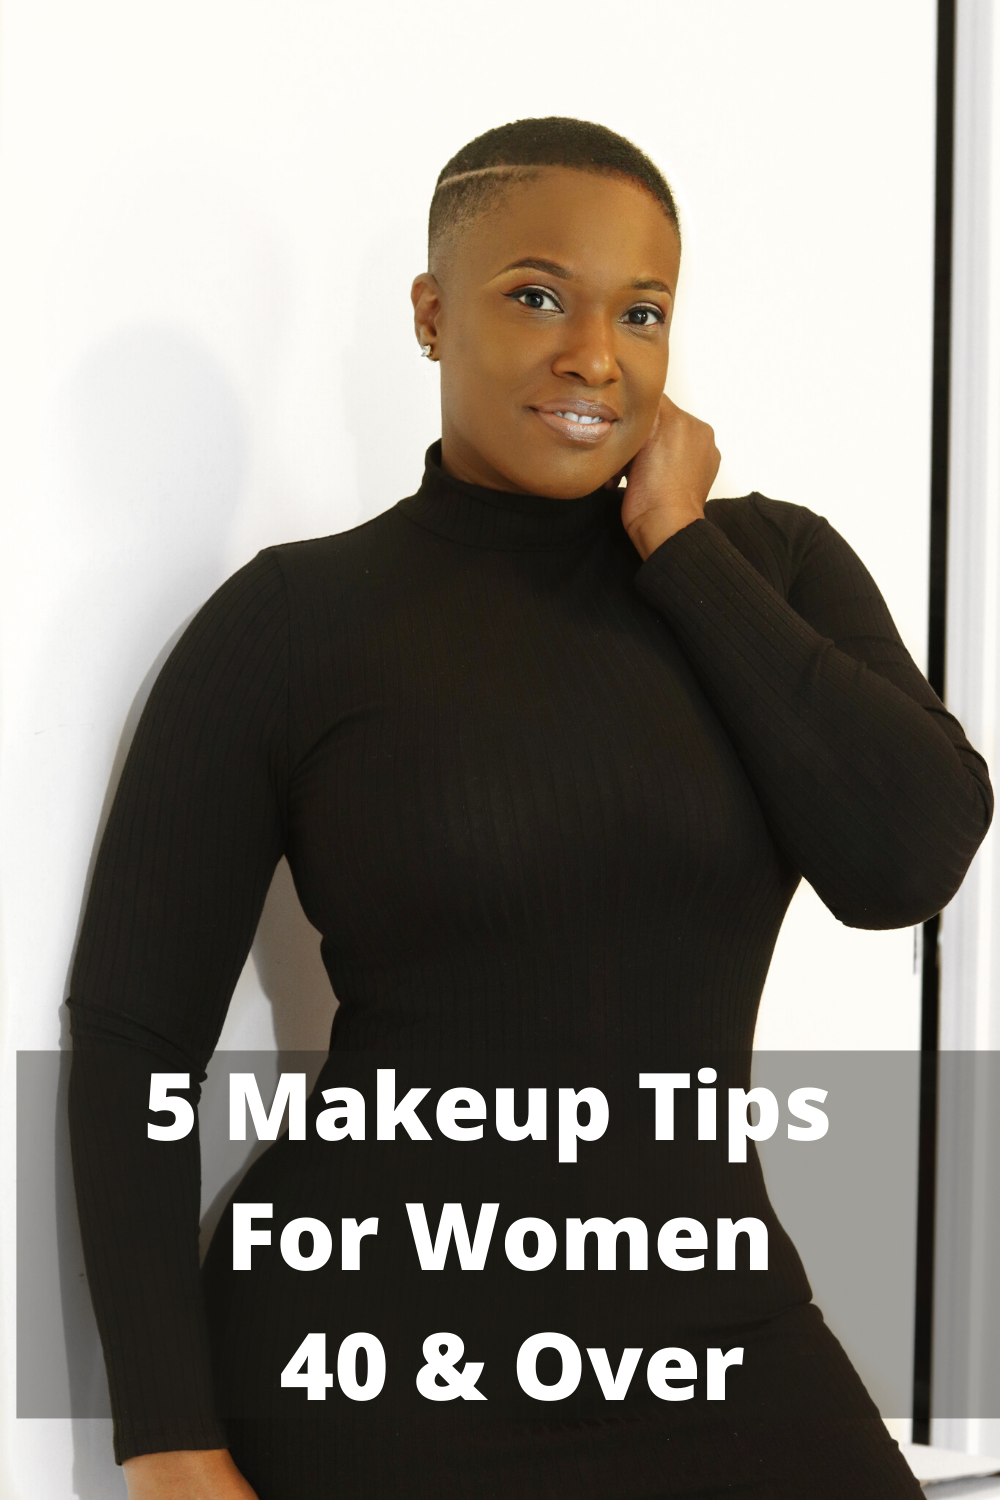 5 Makeup Tips For Women 40 & Over